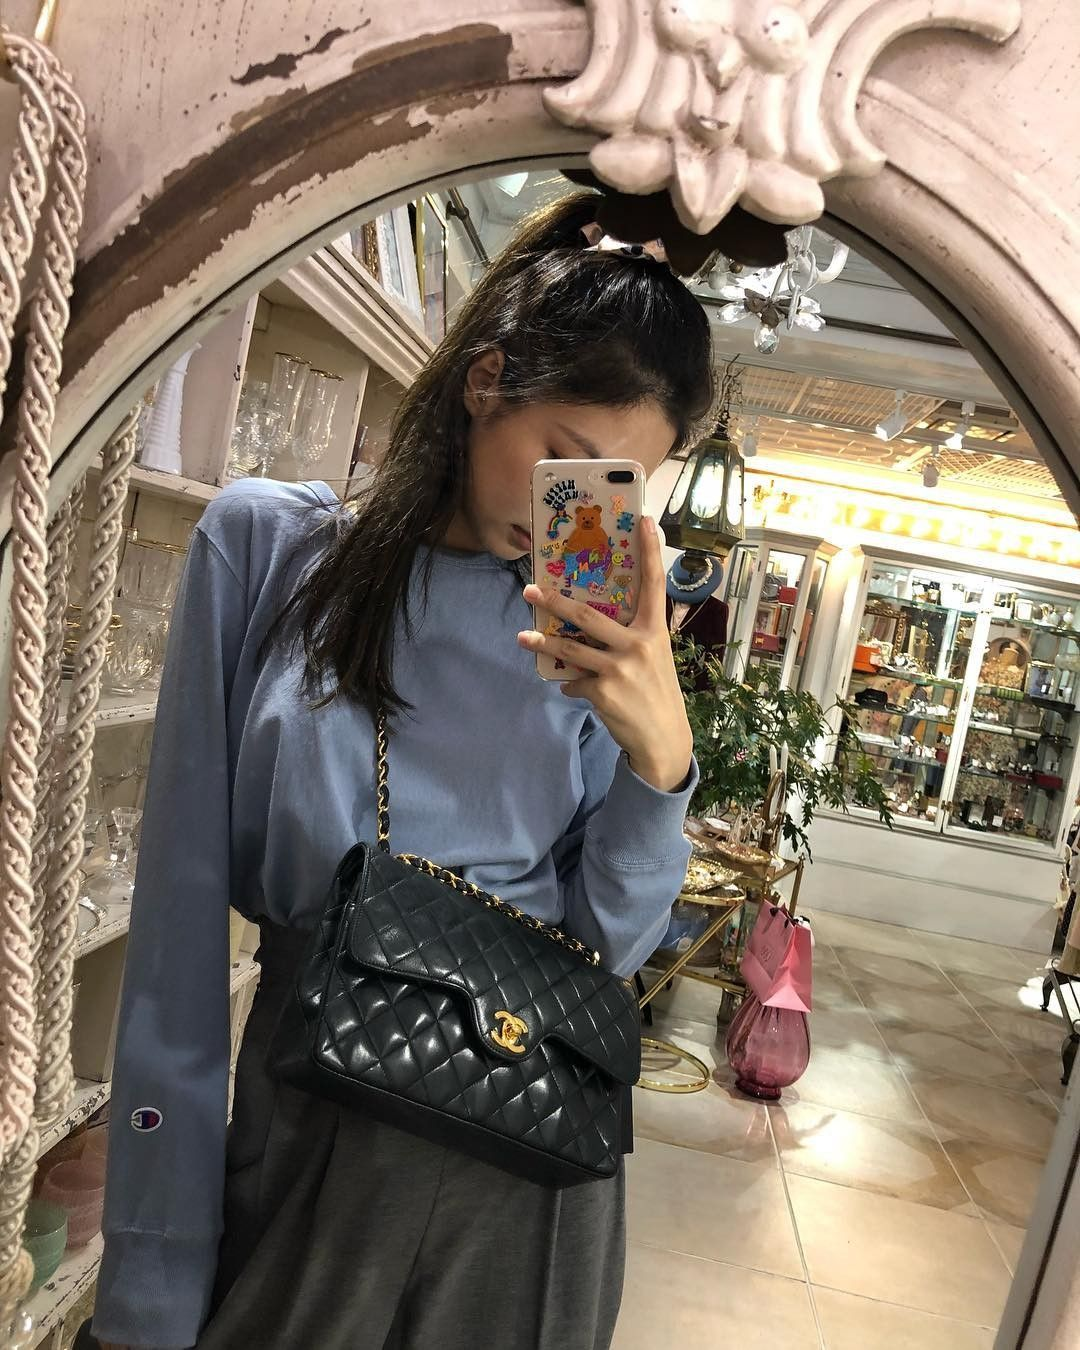 jenniebags_chanel_turnlockflapbag